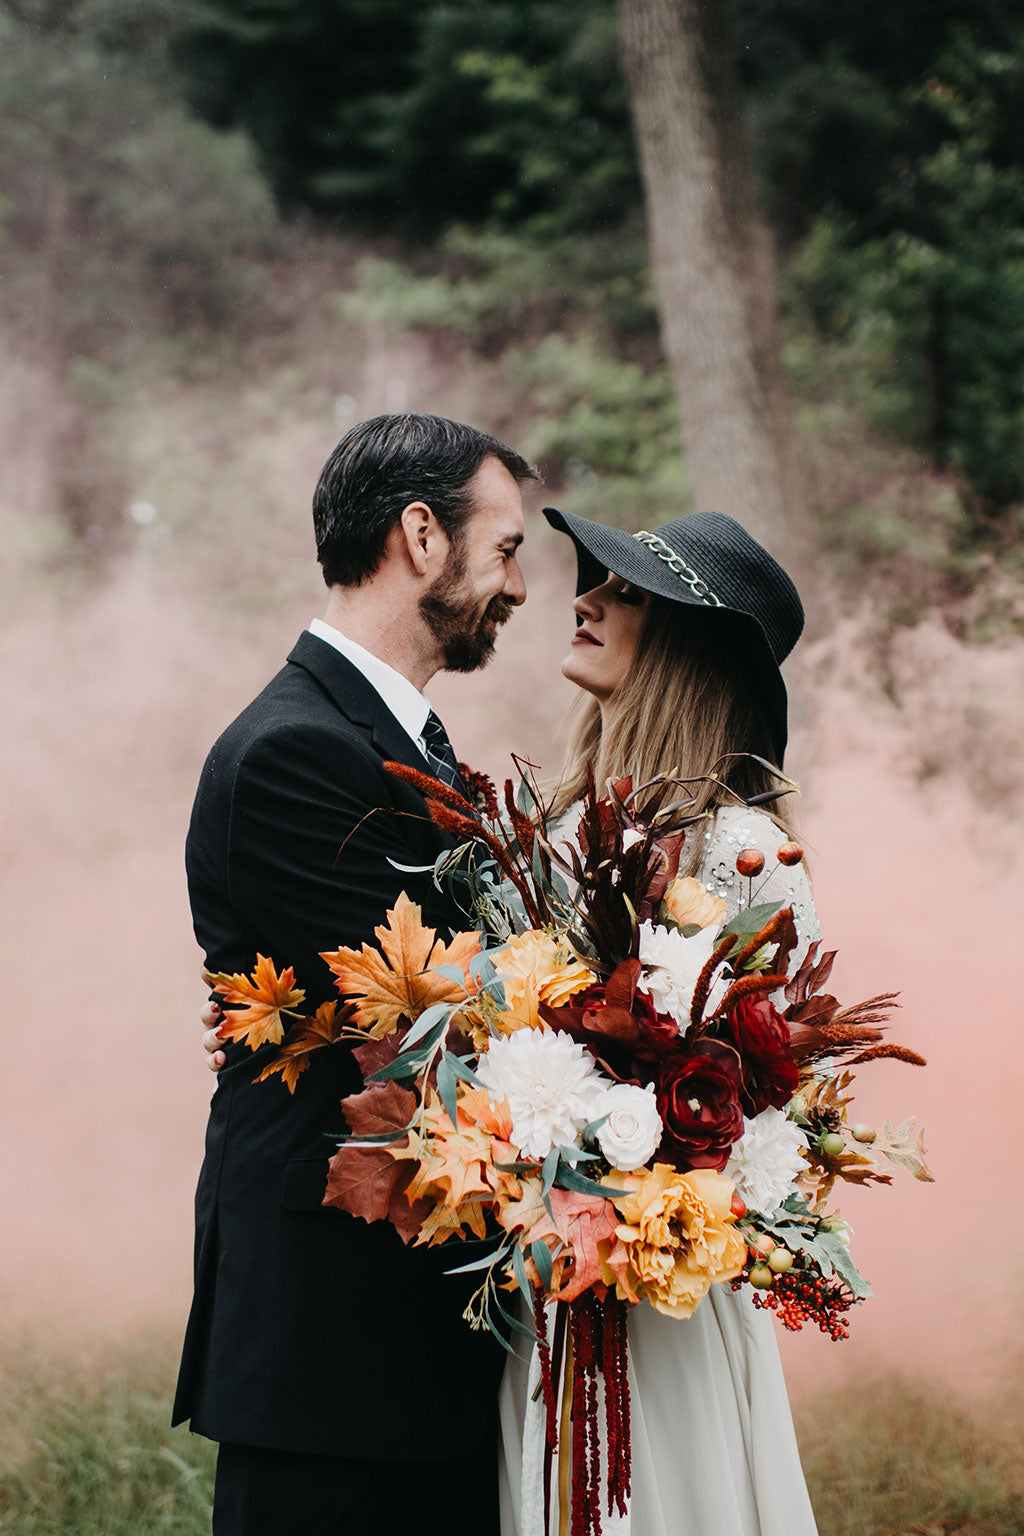 Get The Look Wedding Bouquet Made With Silk Fall Flowers Afloral